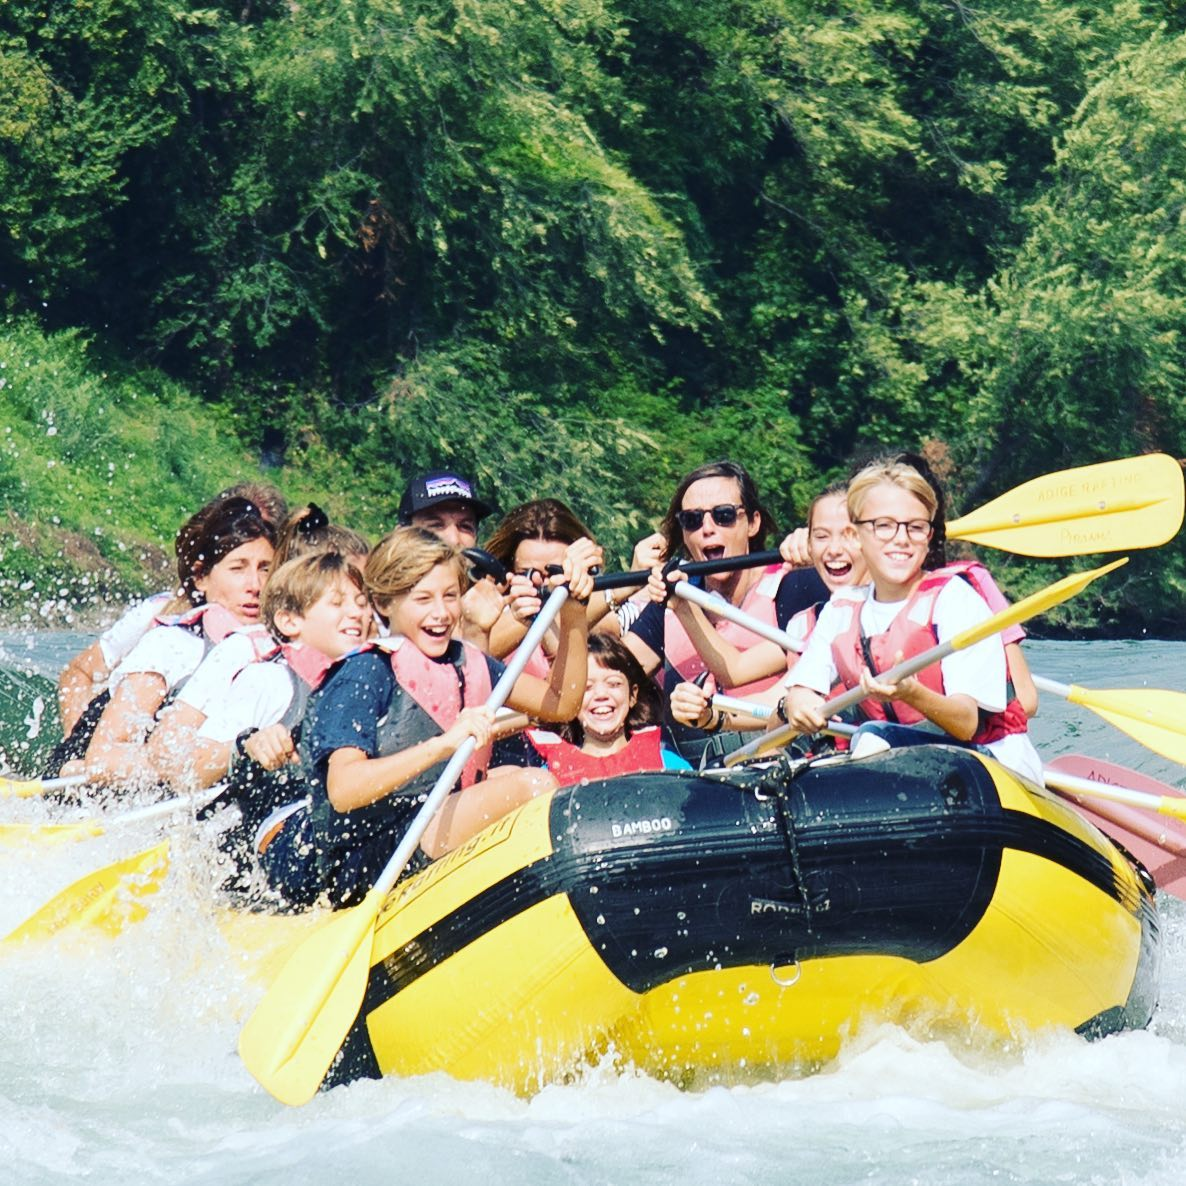 VisitValdadige.com Come with Us! #rafting #veronaturismo #sport #slowturism #v...